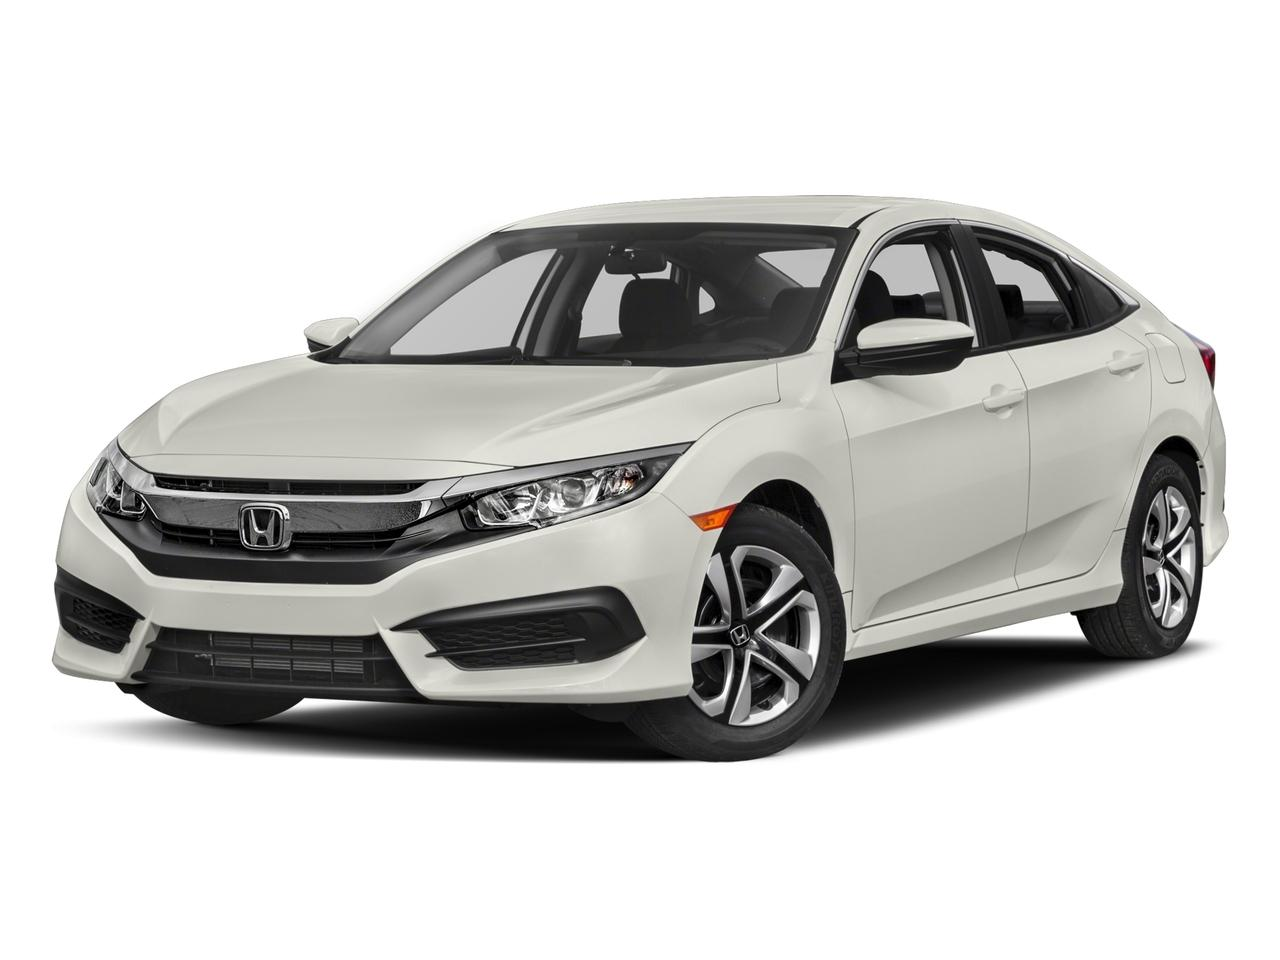 2017 Honda Civic Sedan Vehicle Photo in Austin, TX 78759